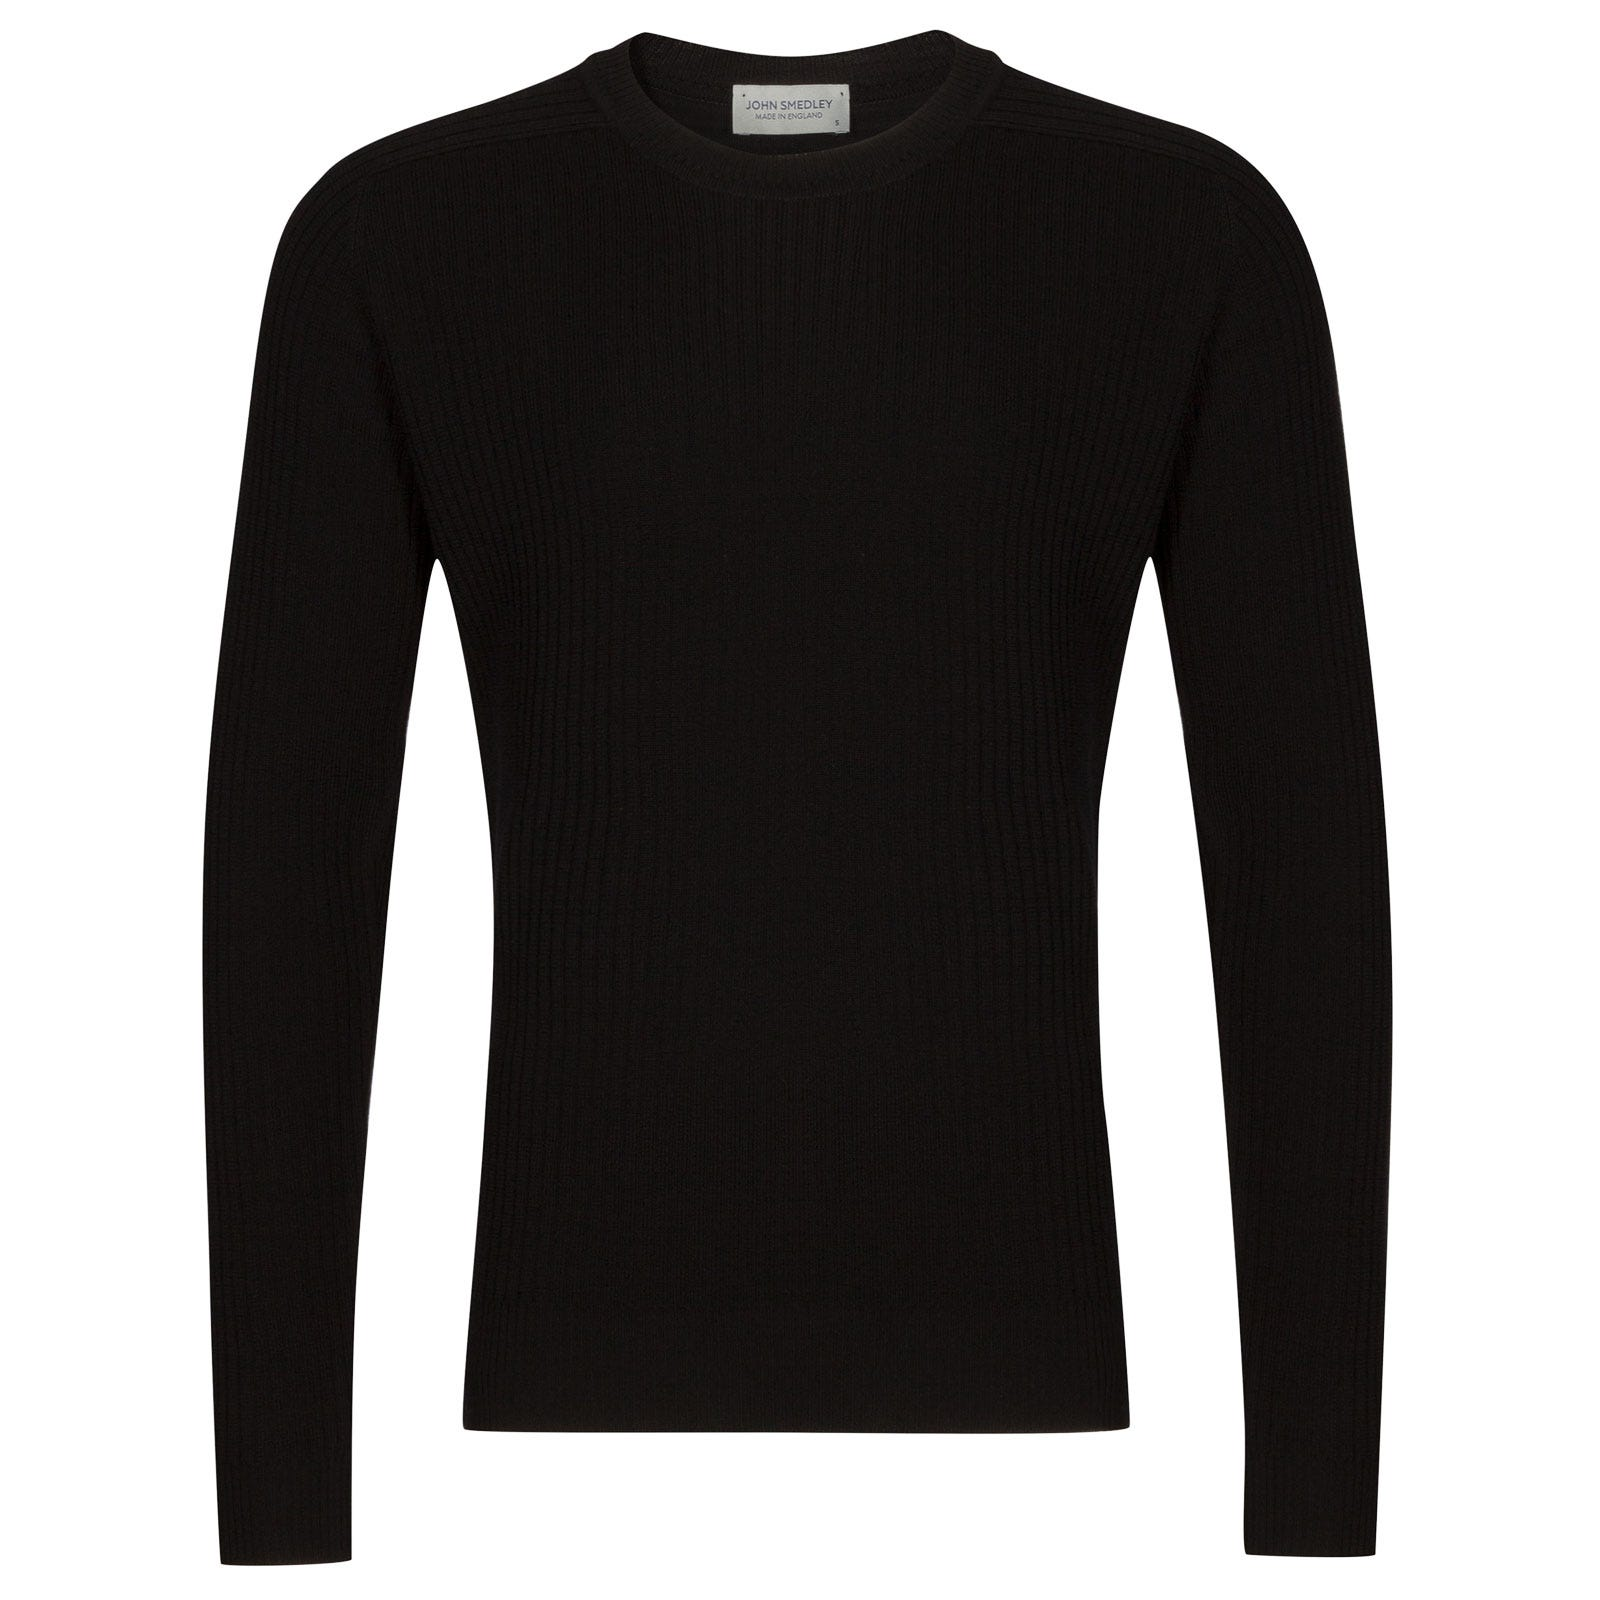 John Smedley idris Merino Wool Pullover in Black-XL